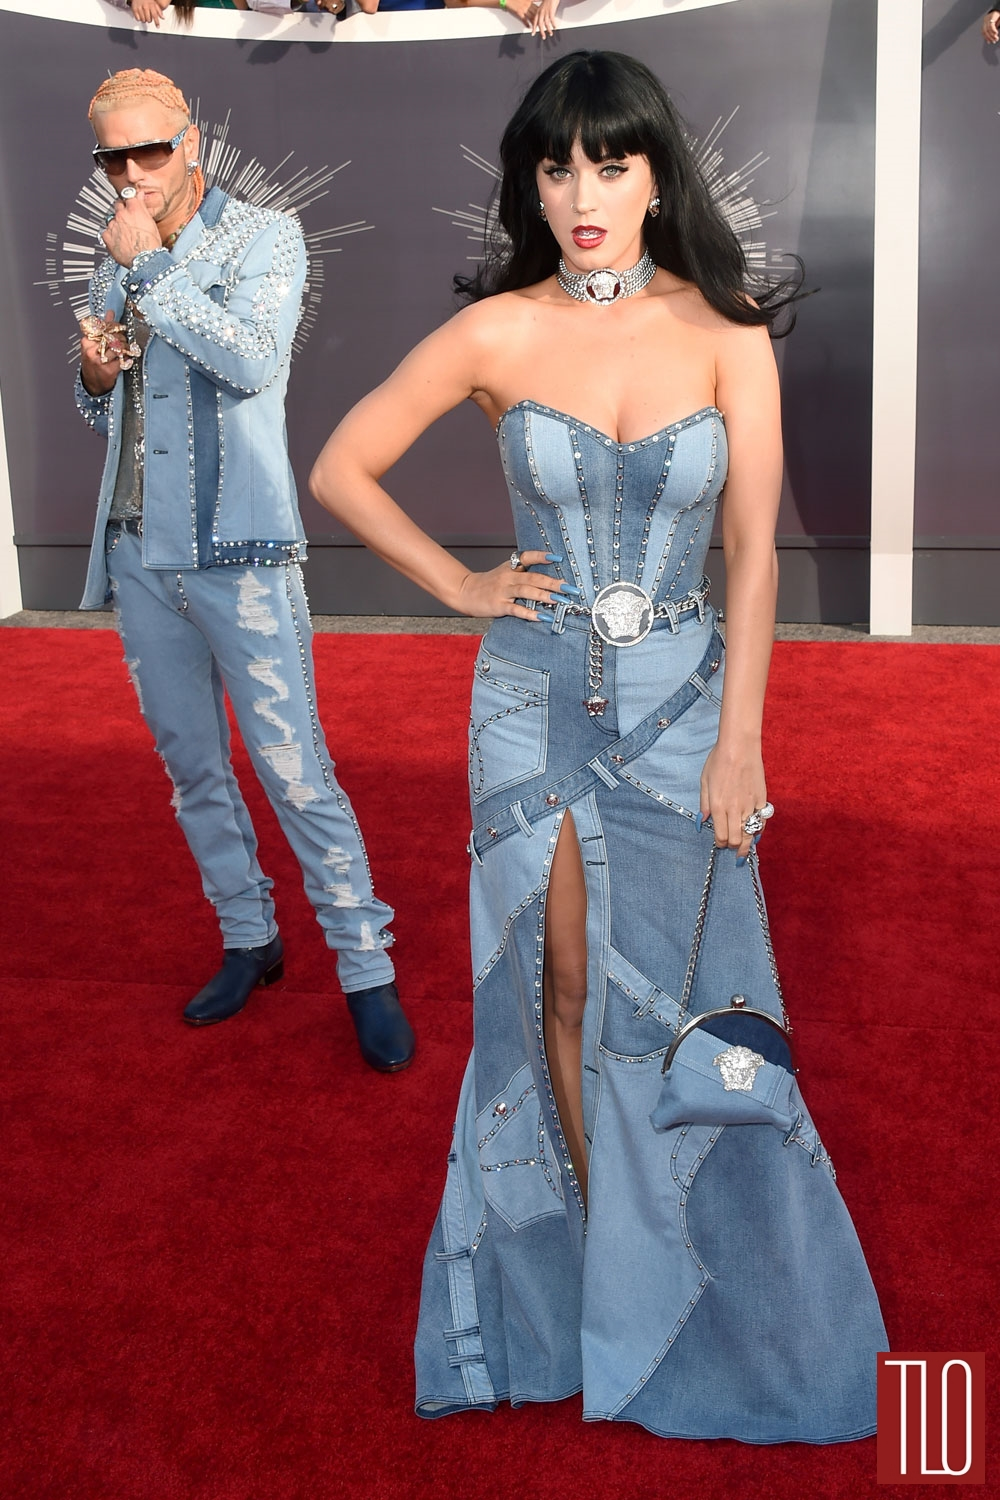 Katy-Perry-2014-MTV-Video-Music-Awards-VMAs-Red-Carpet-Versace-Tom-Lorenzo-Site-TLO (1)